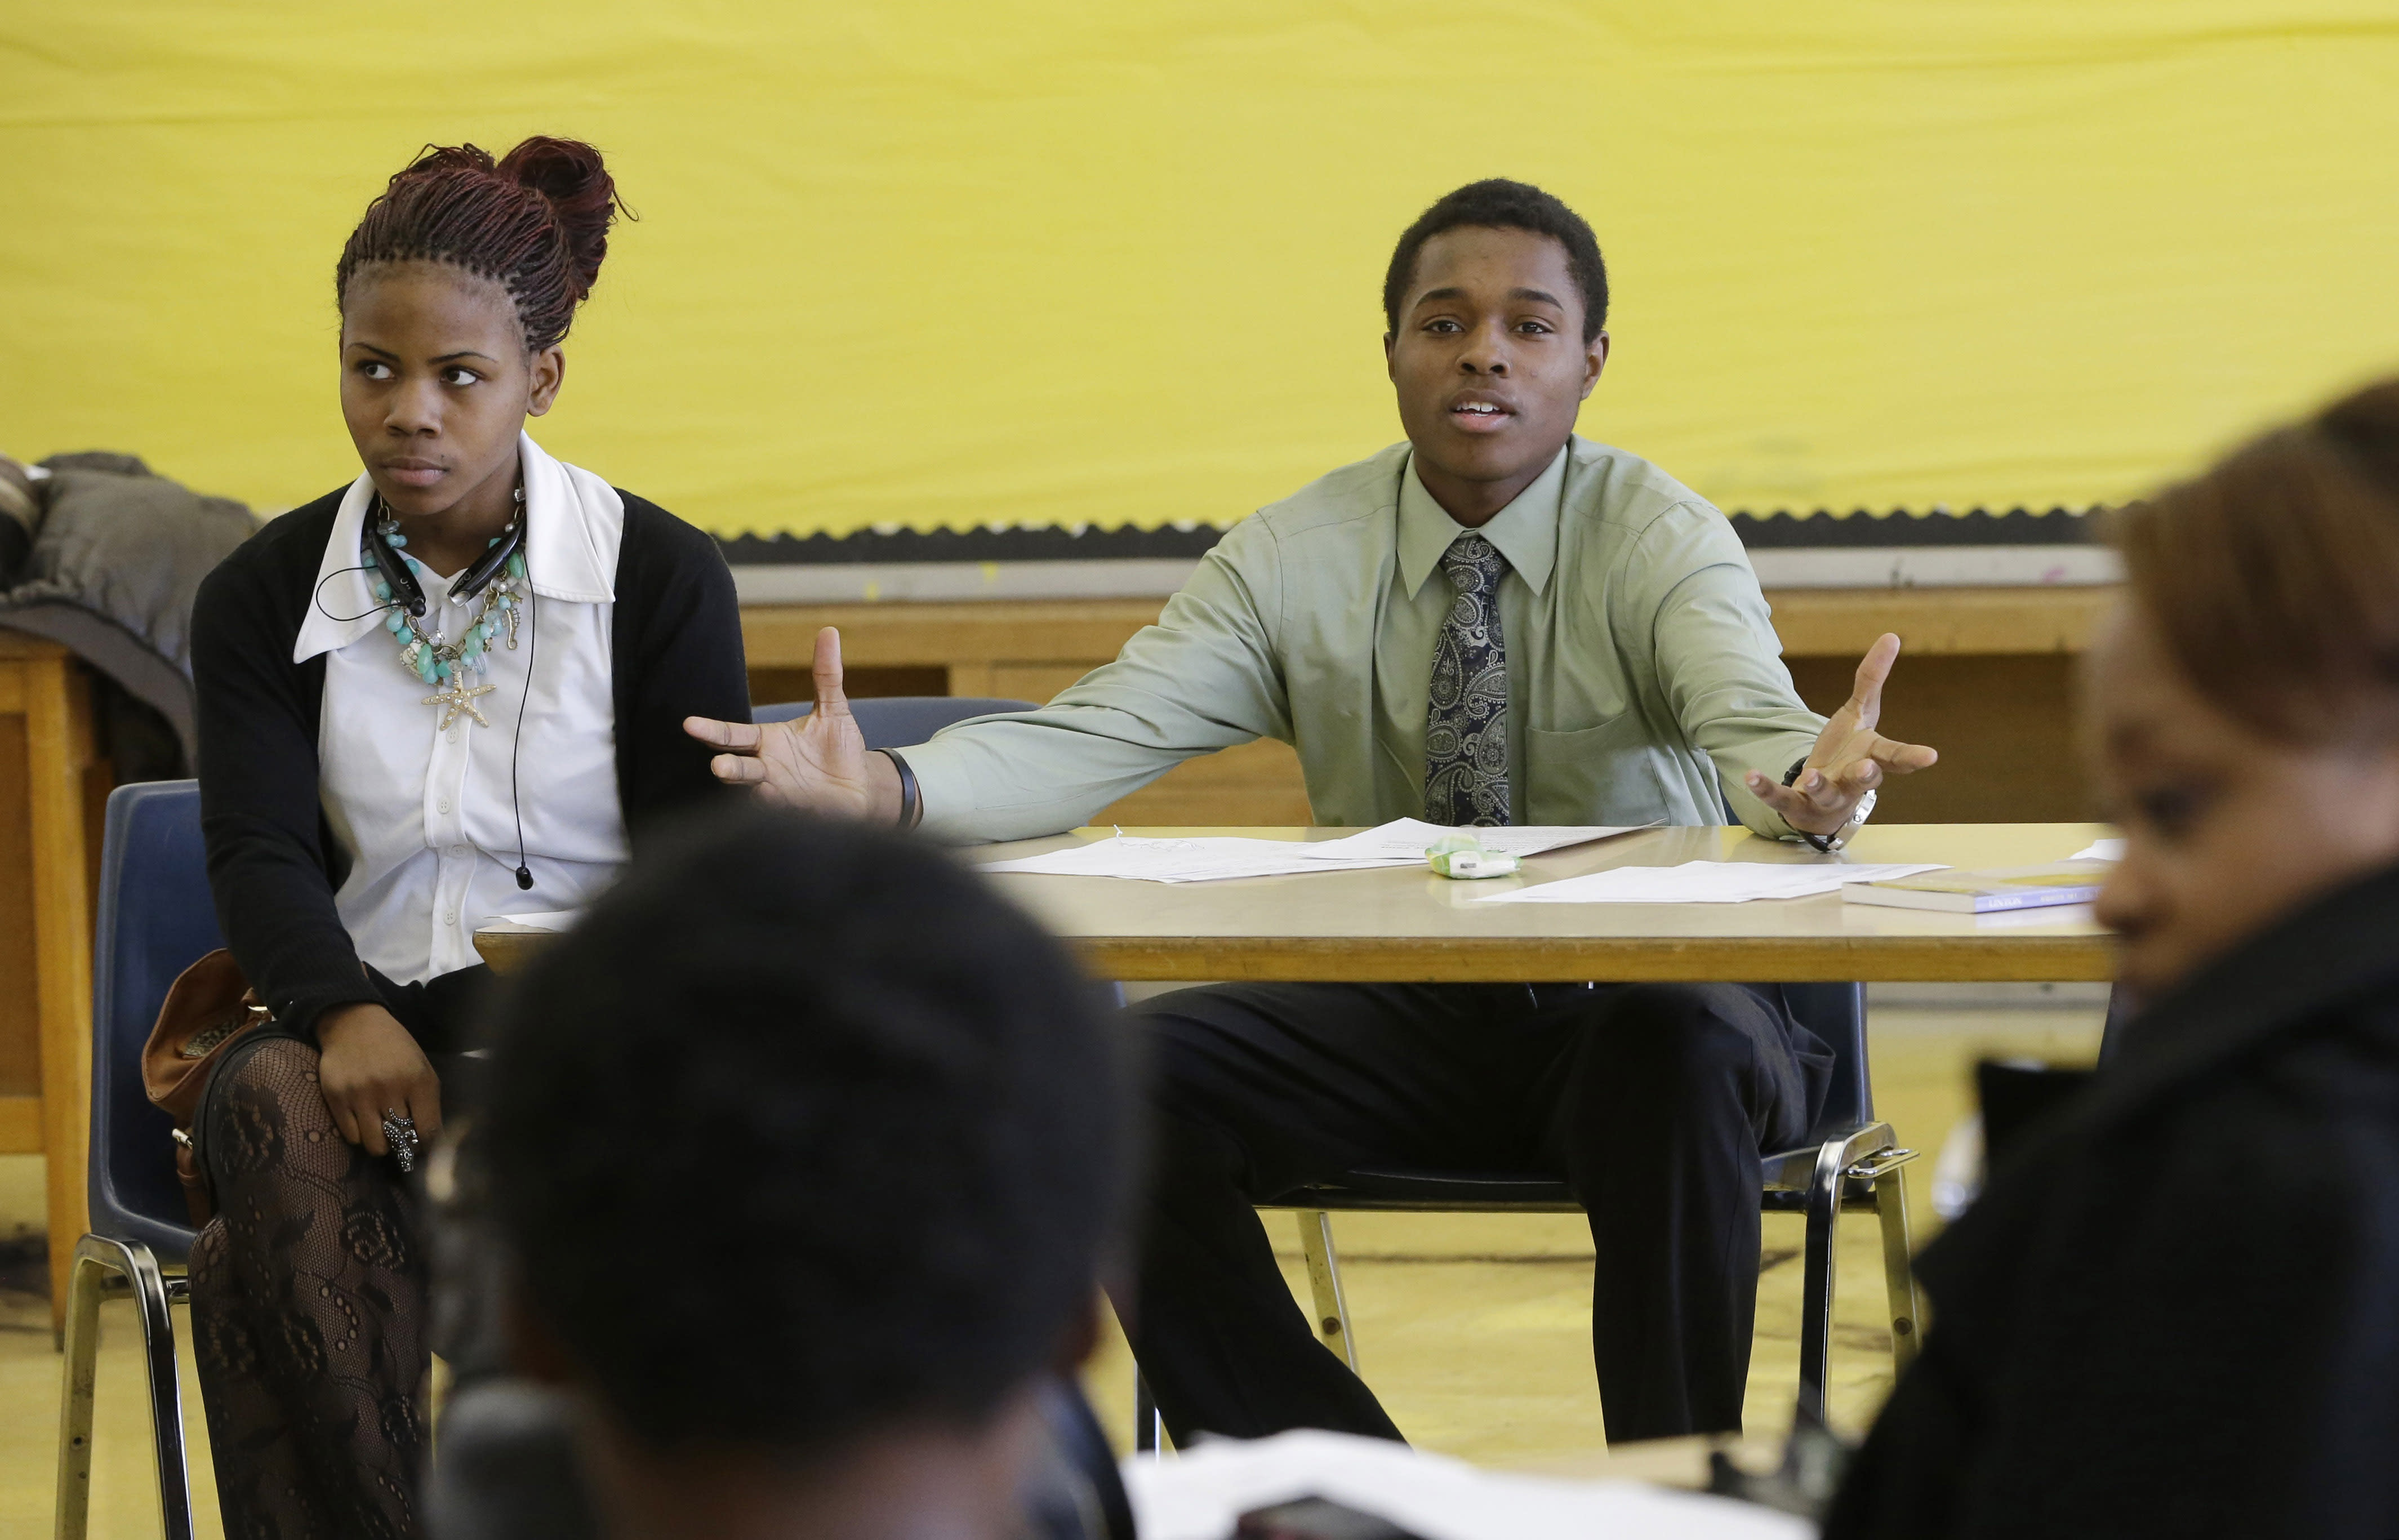 "In this Feb. 27, 2014 photo, student Jalen Pickett, talks during a class that teaches anger management and conflict resolution skills at Cody High School in Detroit. Jalen, now a diligent student with aspirations to be a defense lawyer, had an inauspicious start to high school. His fighting earned him a spot in the new police department program - the Children in Trauma Intervention Camp which gives students an alternative to expulsion in the form of training and counseling from police officers and other adult mentors. ""If Detroit can change, it's up to the youth to do it,"" Jalen says. ""I feel Detroit can come back. And if I do go away to college, I plan on coming back here and giving back to Detroit."" (AP Photo/Carlos Osorio)"